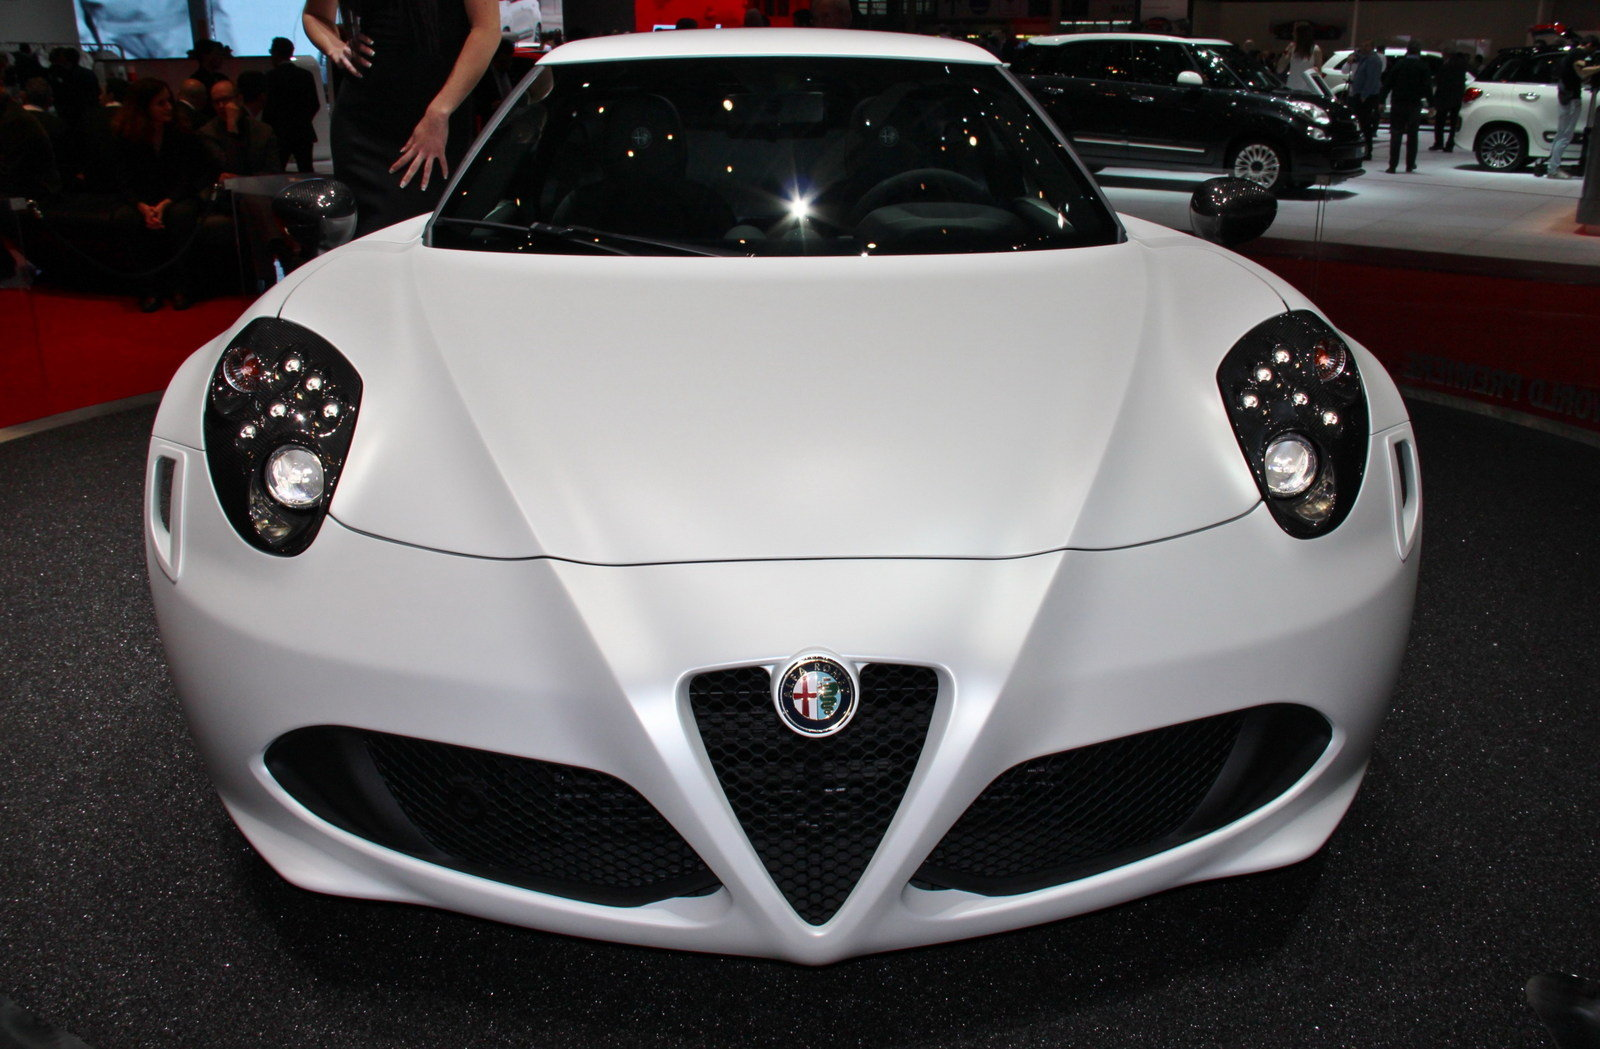 2014 alfa romeo 4c launch edition picture 496838 car review top speed. Black Bedroom Furniture Sets. Home Design Ideas